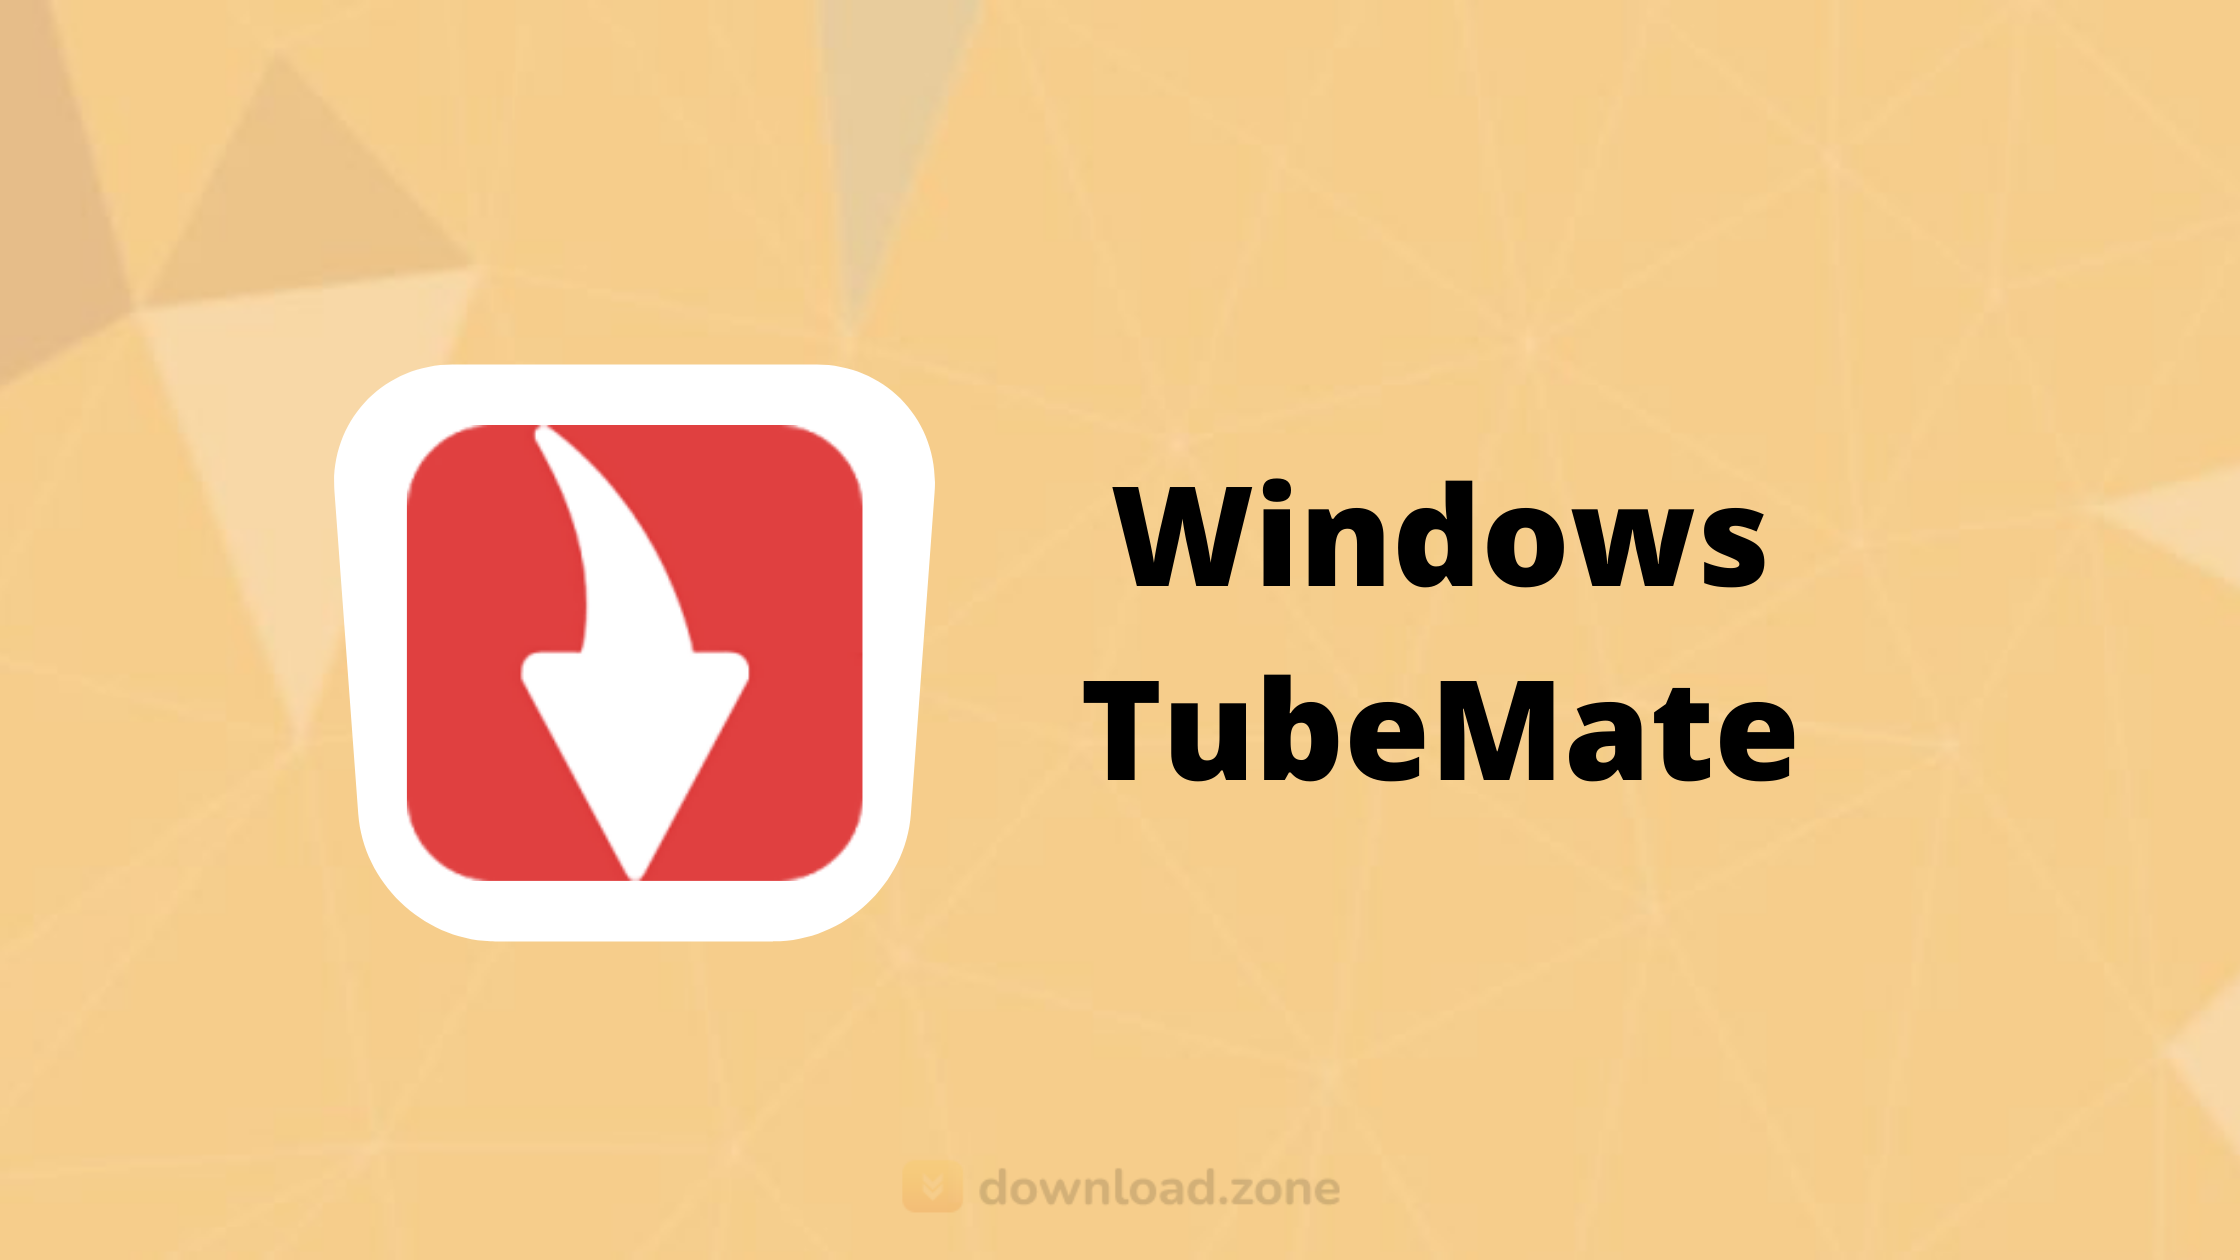 Windows TubeMate Download for PC